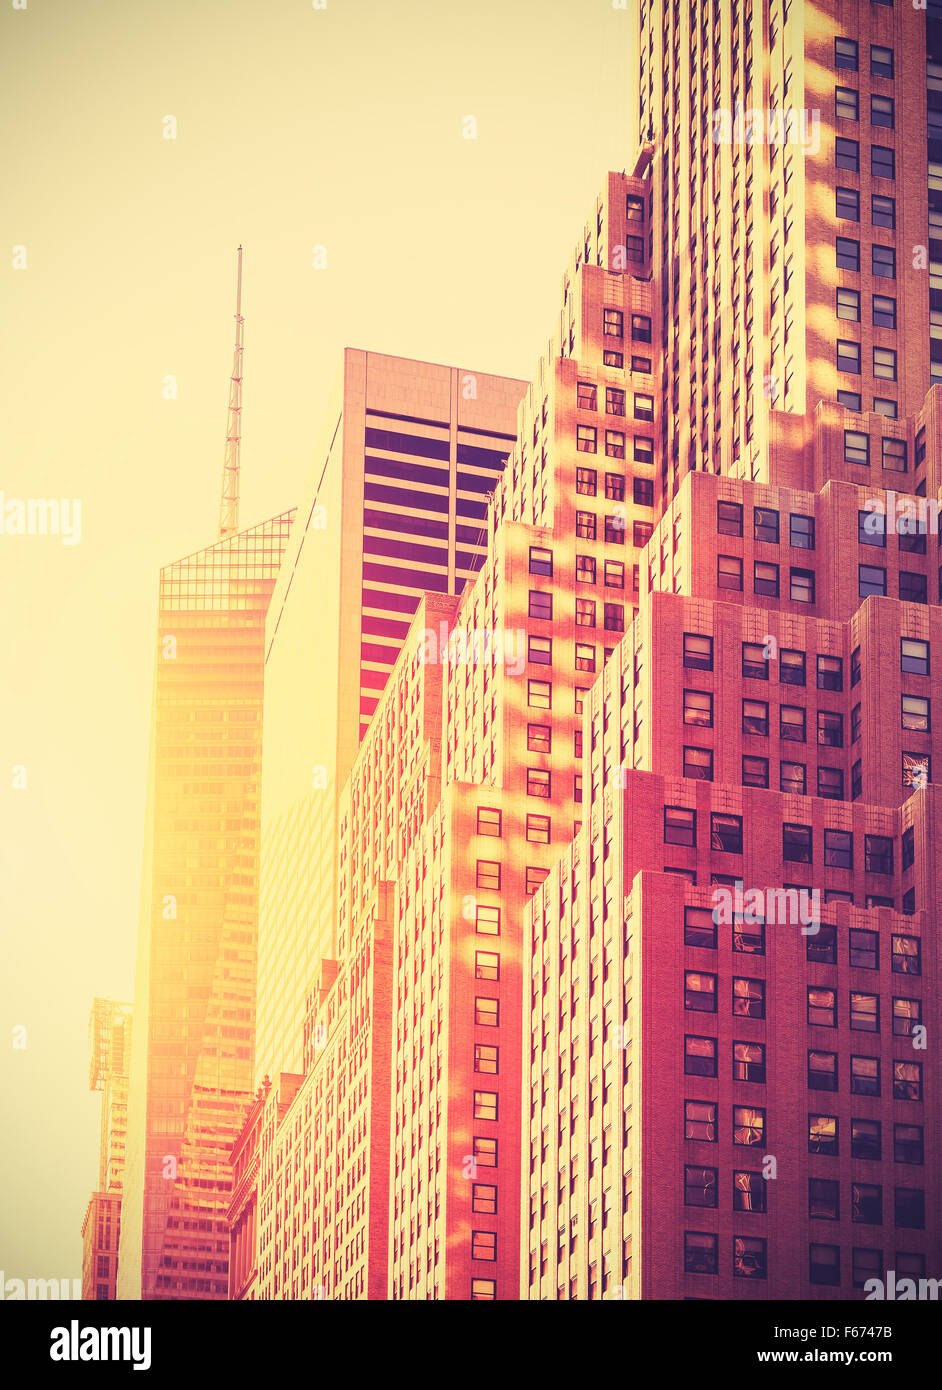 Vintage toned photo of skyscrapers in Manhattan at sunset, New York City, USA. - Stock Image